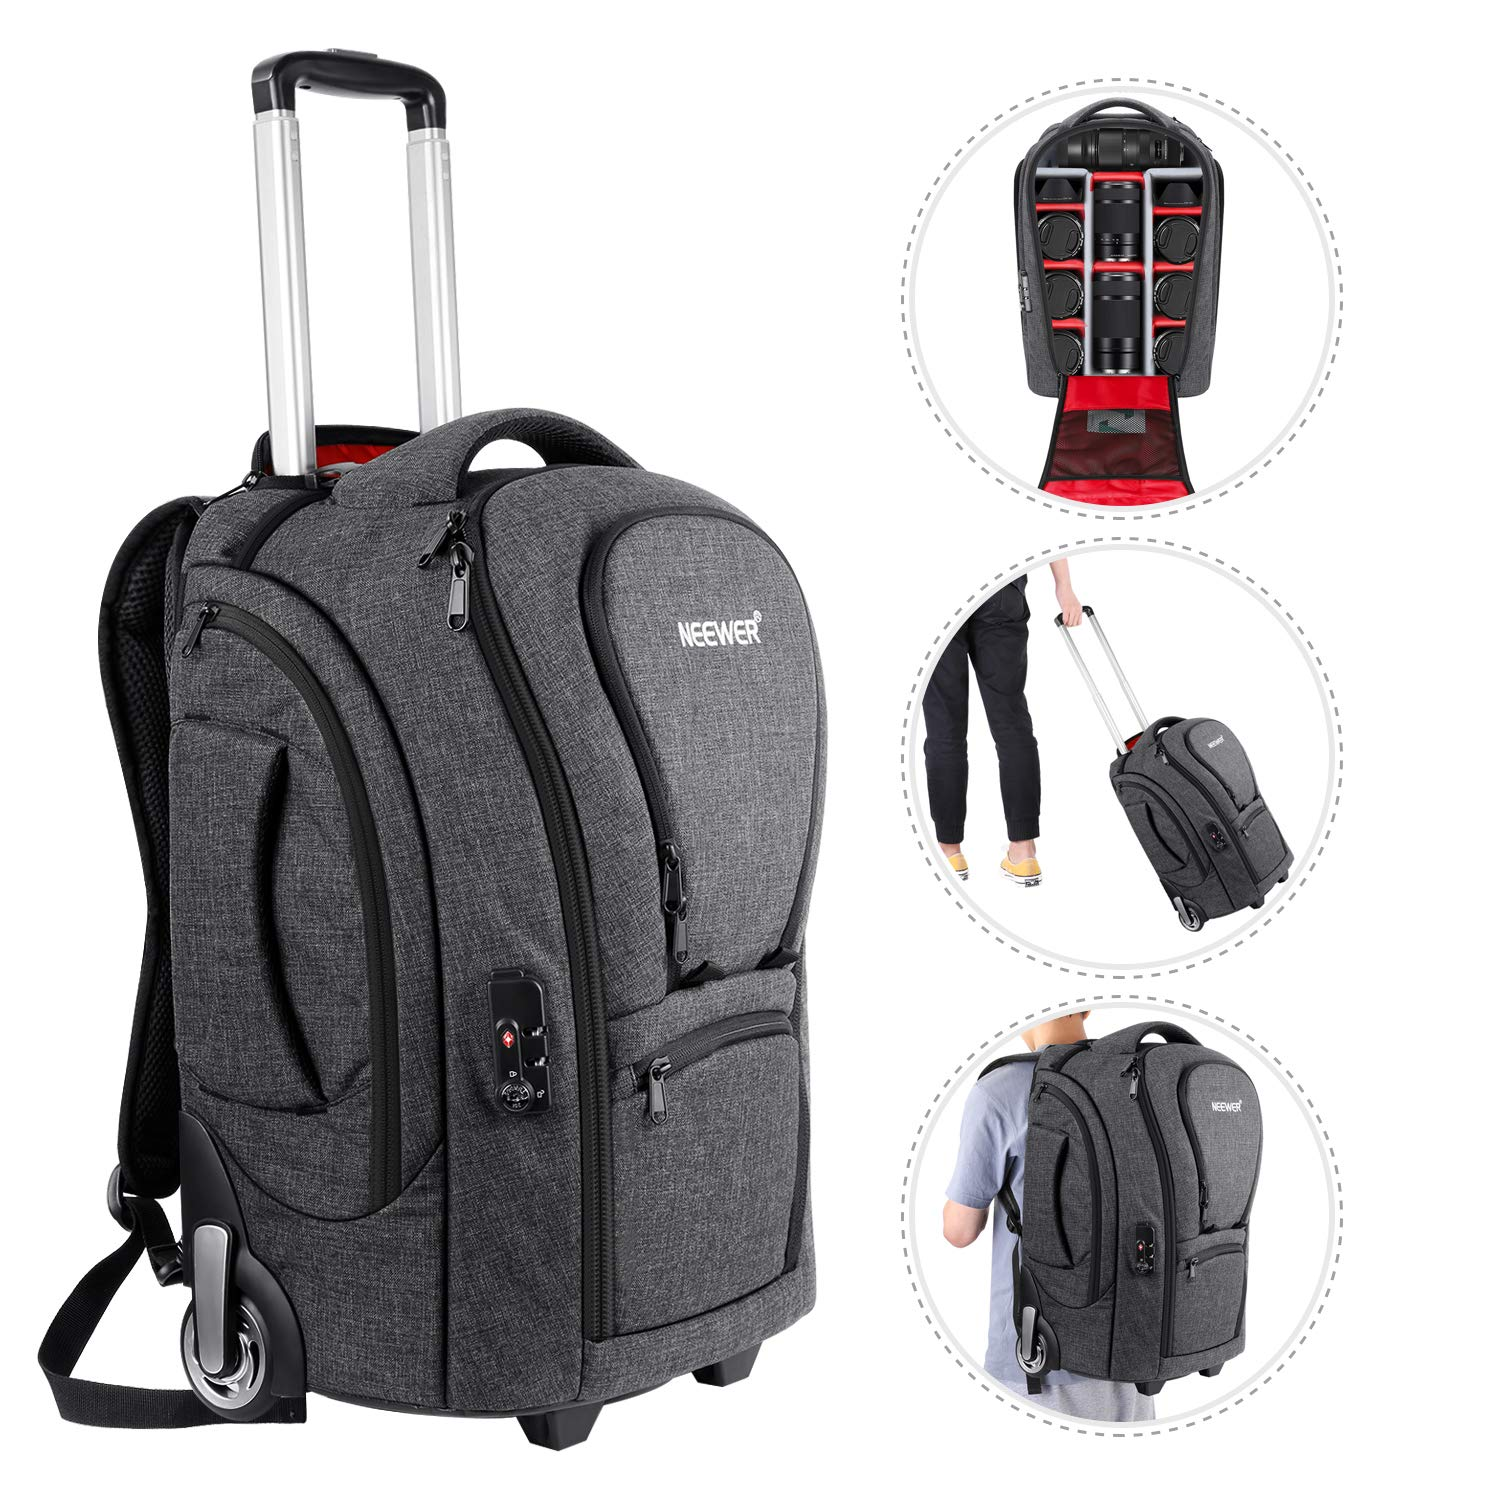 0595d39273c3 Neewer 2-in-1 Camera Rolling Backpack Trolley Case with TSA Lock, Anti